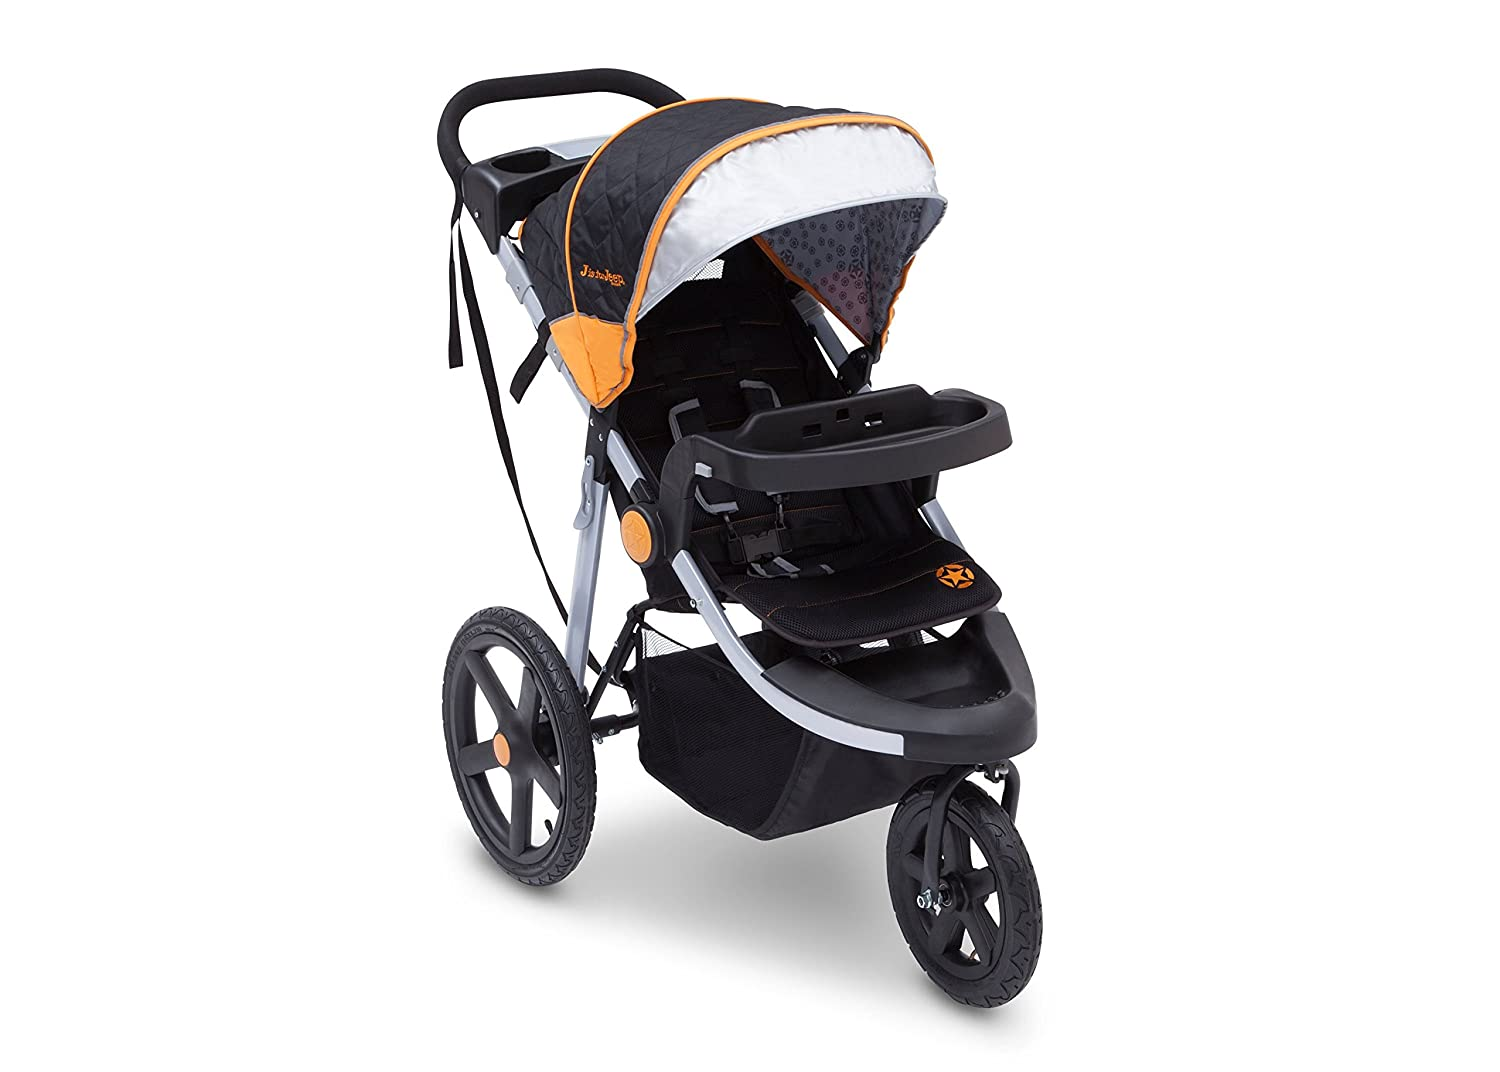 avalon jogging stroller price strollers 2017. Black Bedroom Furniture Sets. Home Design Ideas